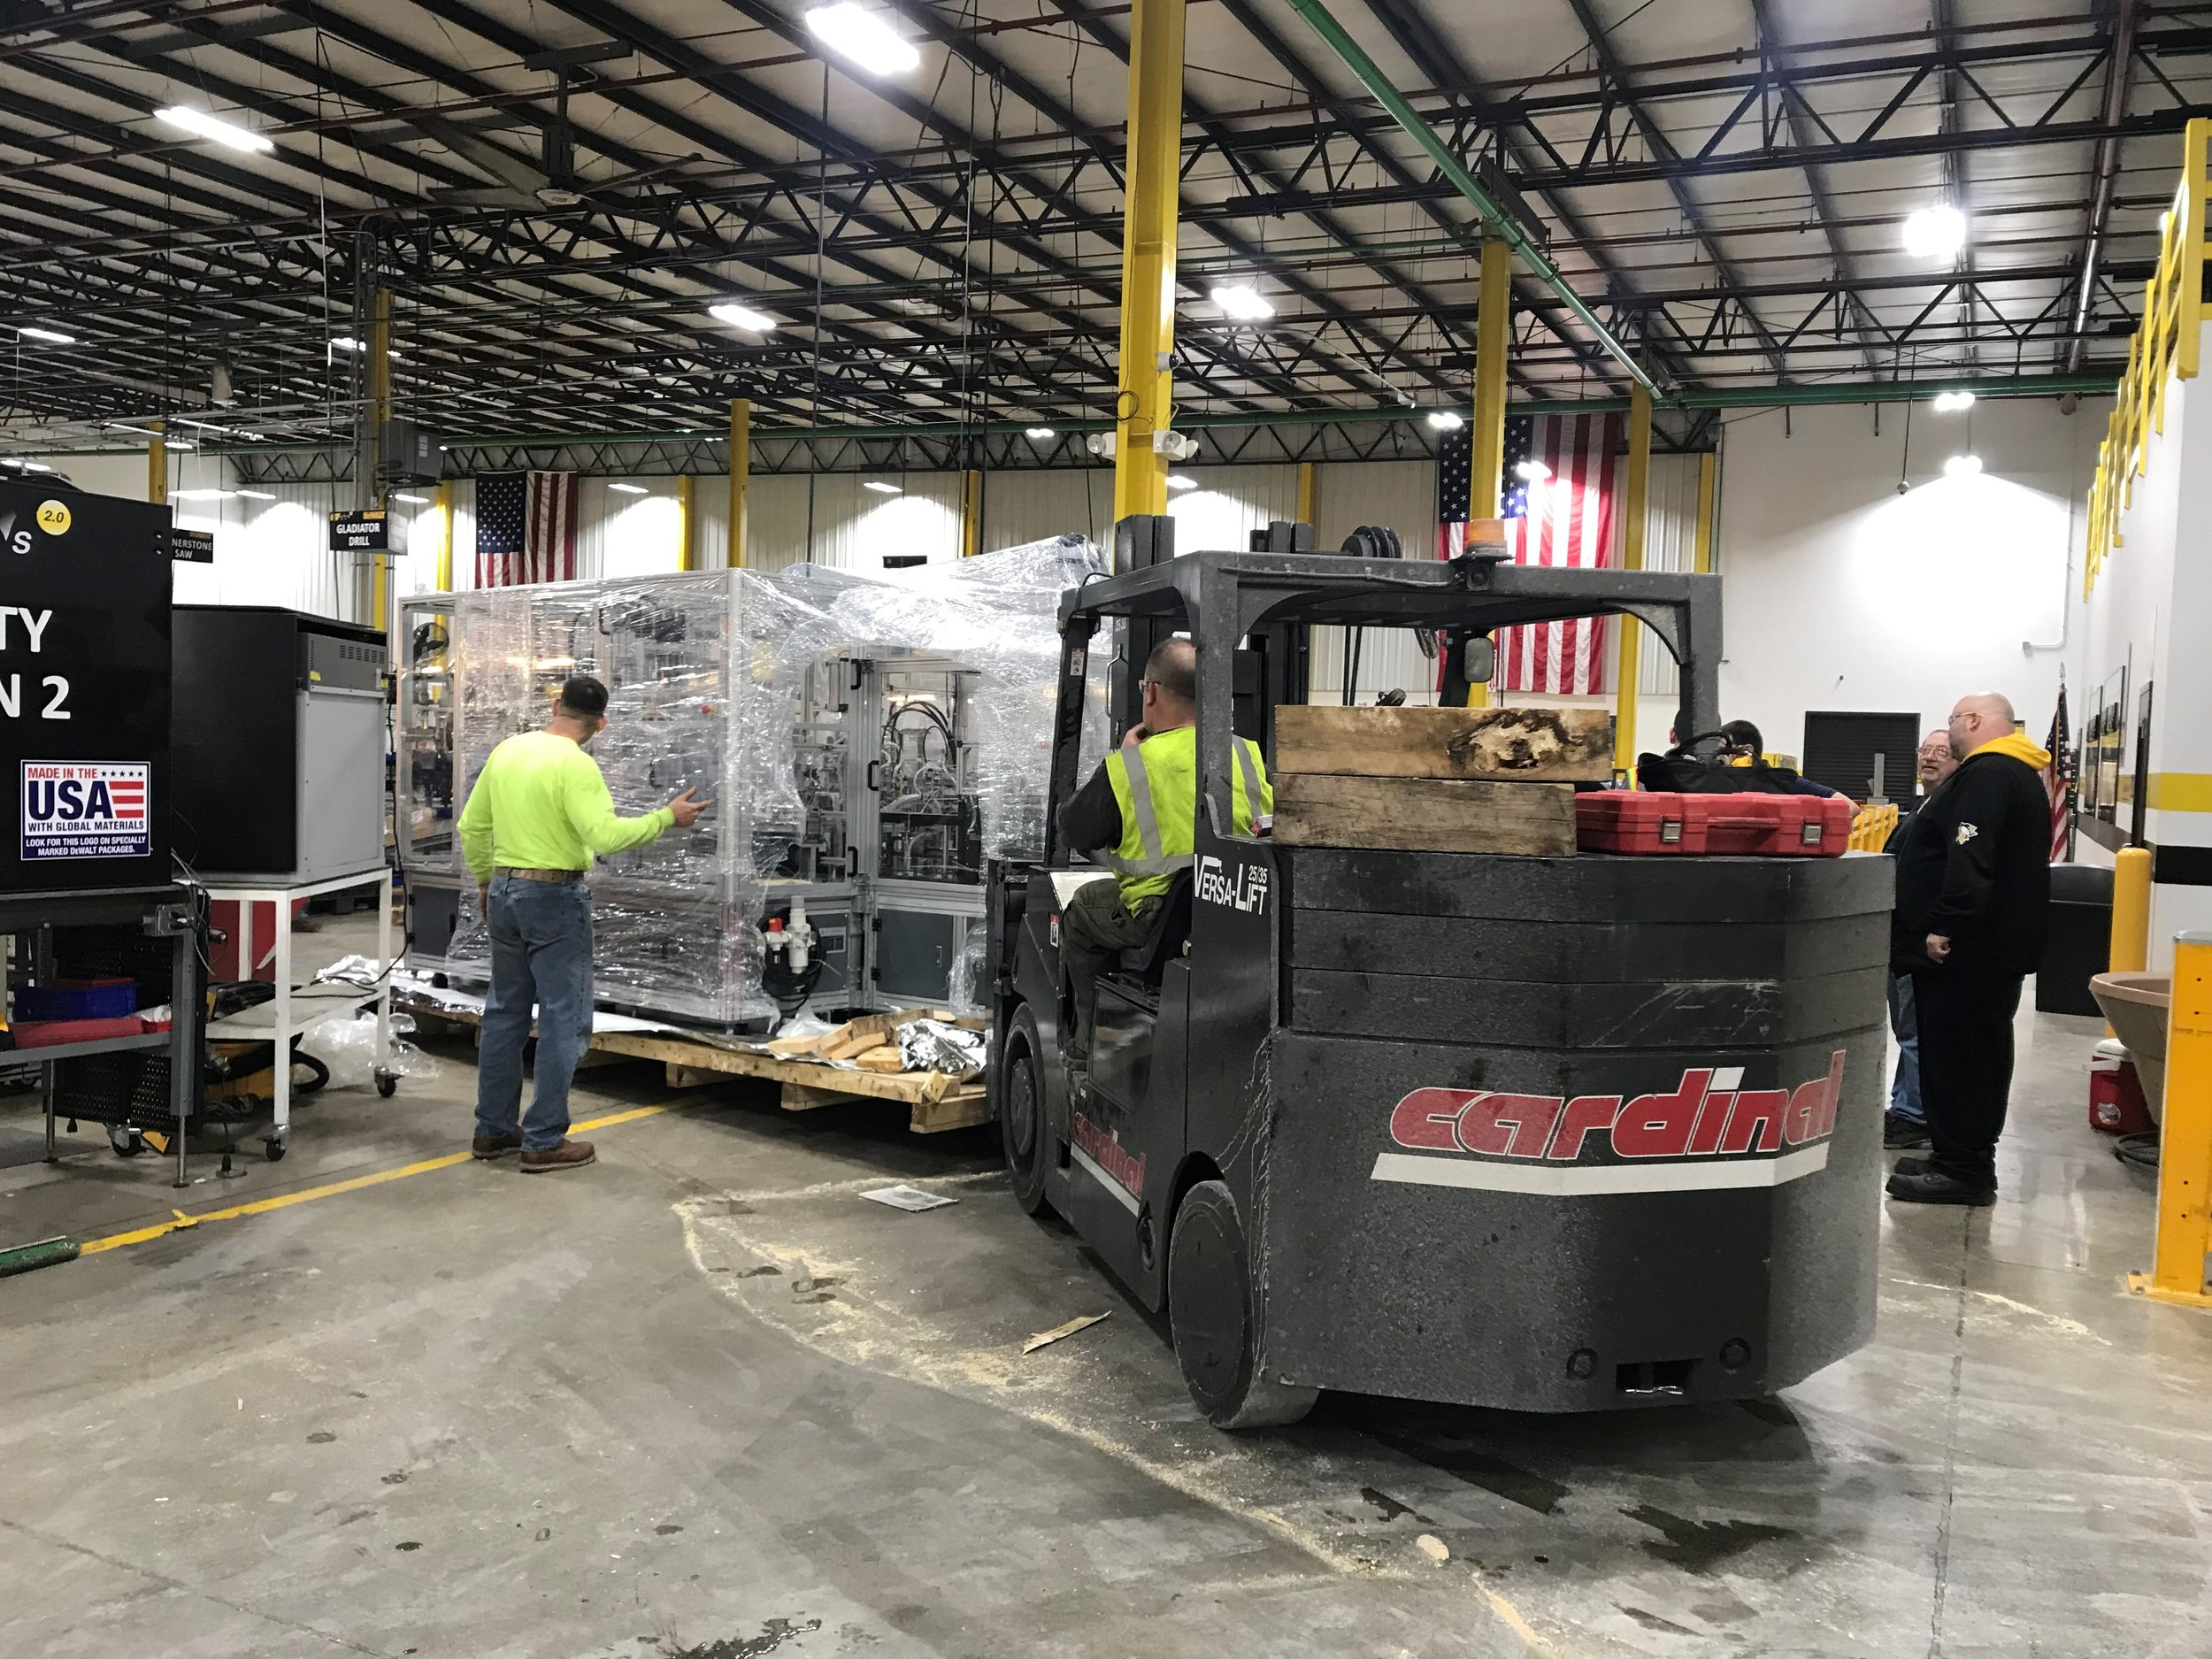 Stanley Black & Decker, 1/17/18 - Cardinal unloaded, set, and leveled an Ironman gear case for Stanley Black & Decker in Greenfield, IN. Three of our guys and a heavy-duty forklift completed the job in one day.